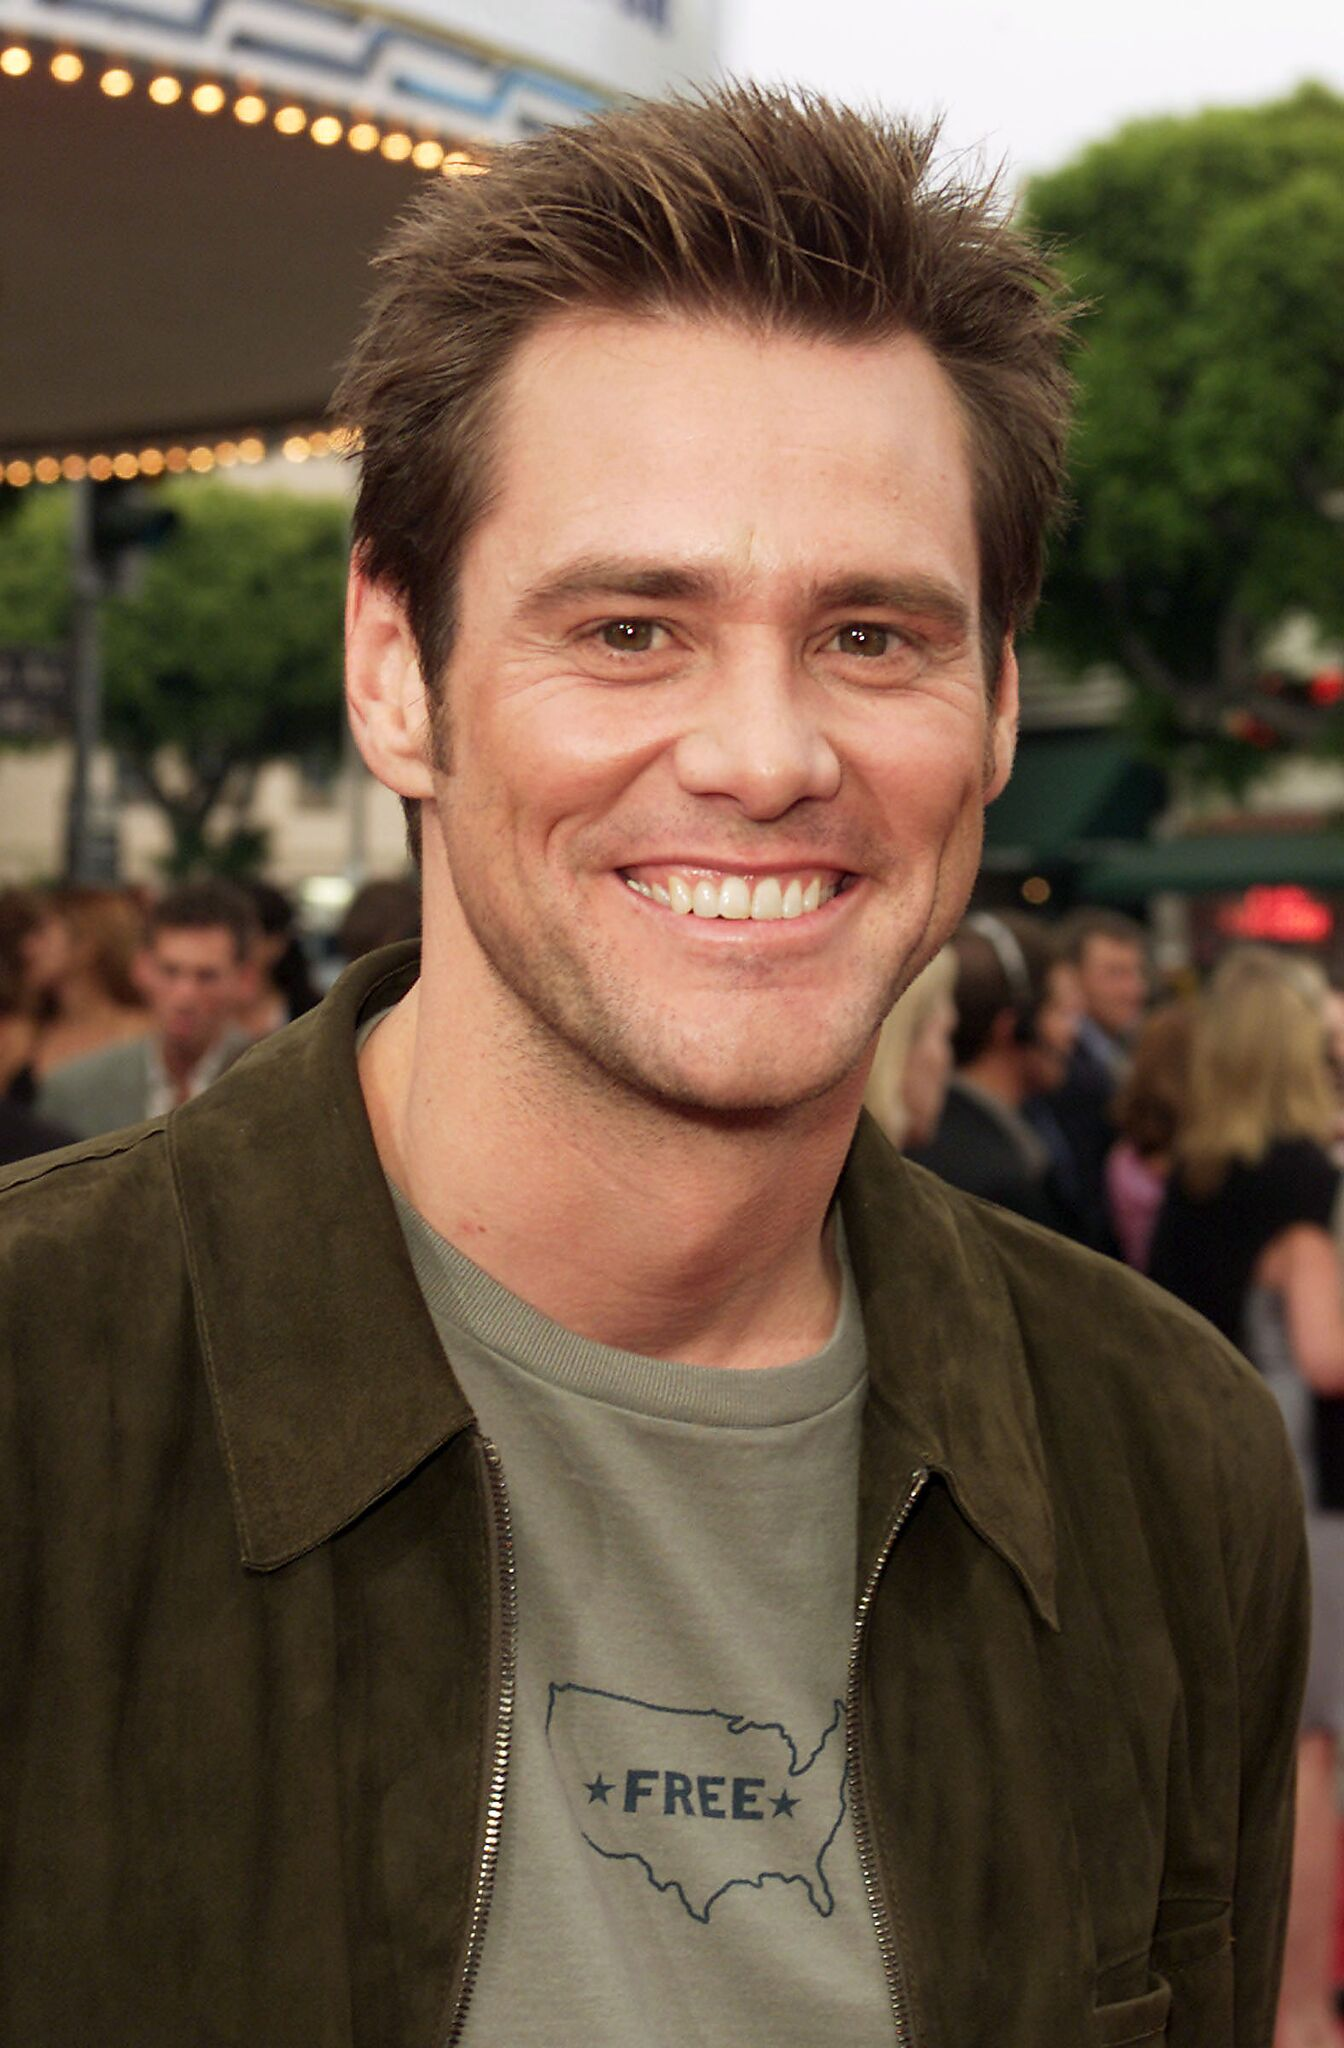 Jim Carrey at the premiere of 'Me, Myself & Irene' at the Village Theater in Westwood, California in 2002 | Photo: Getty Images